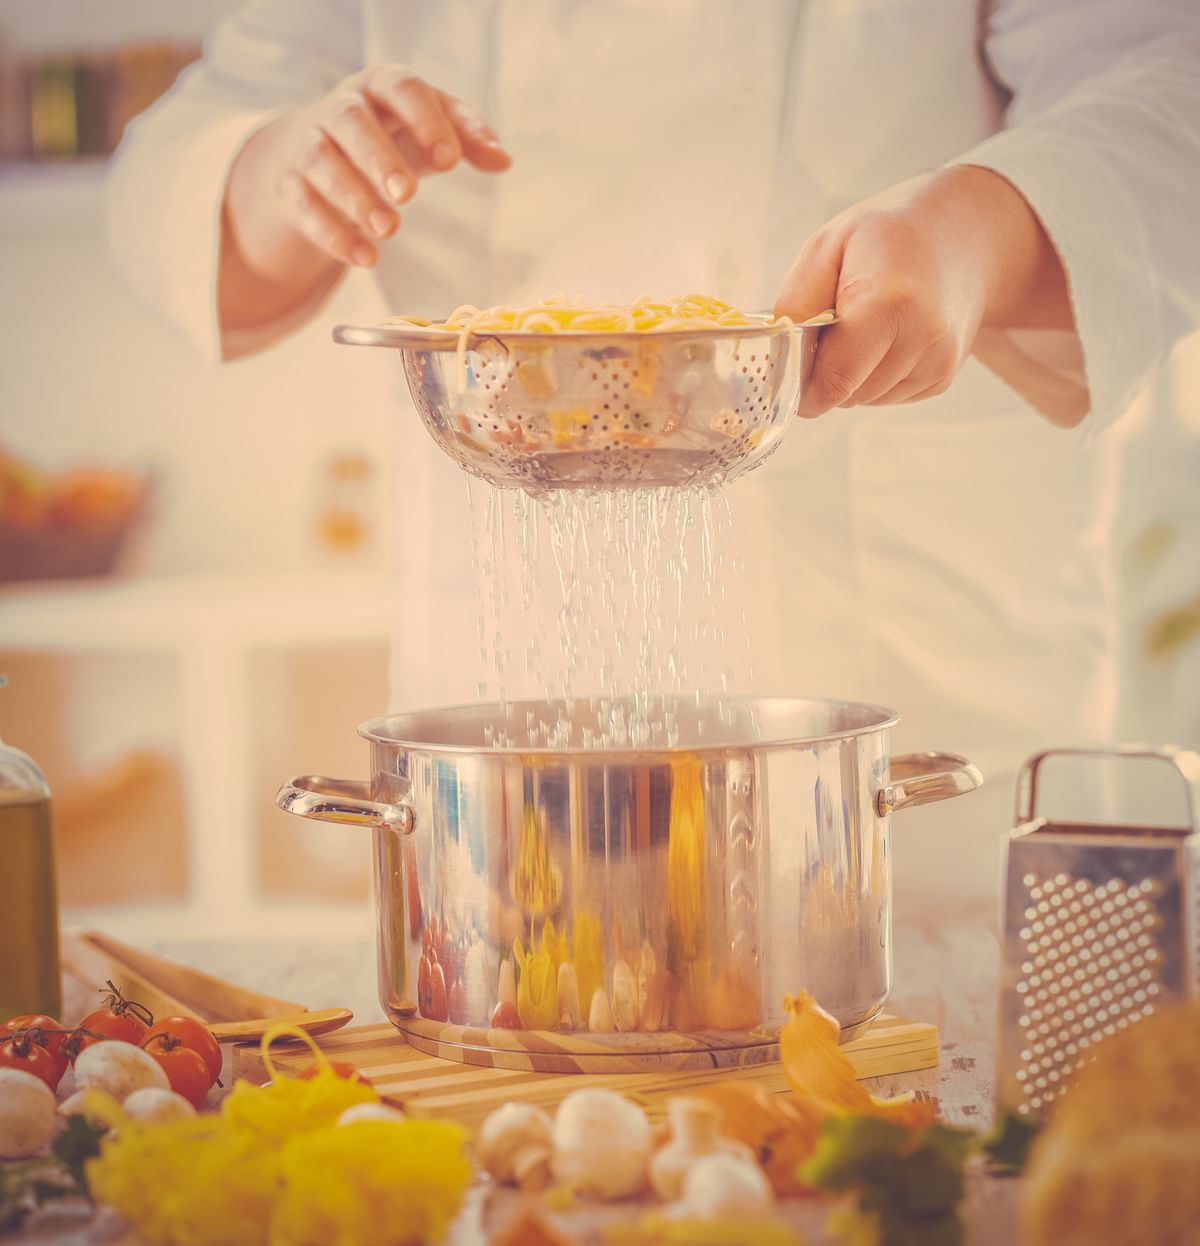 Once your pasta's boiled, strain it in a colander and place it over a pot so that the pasta water is saved.